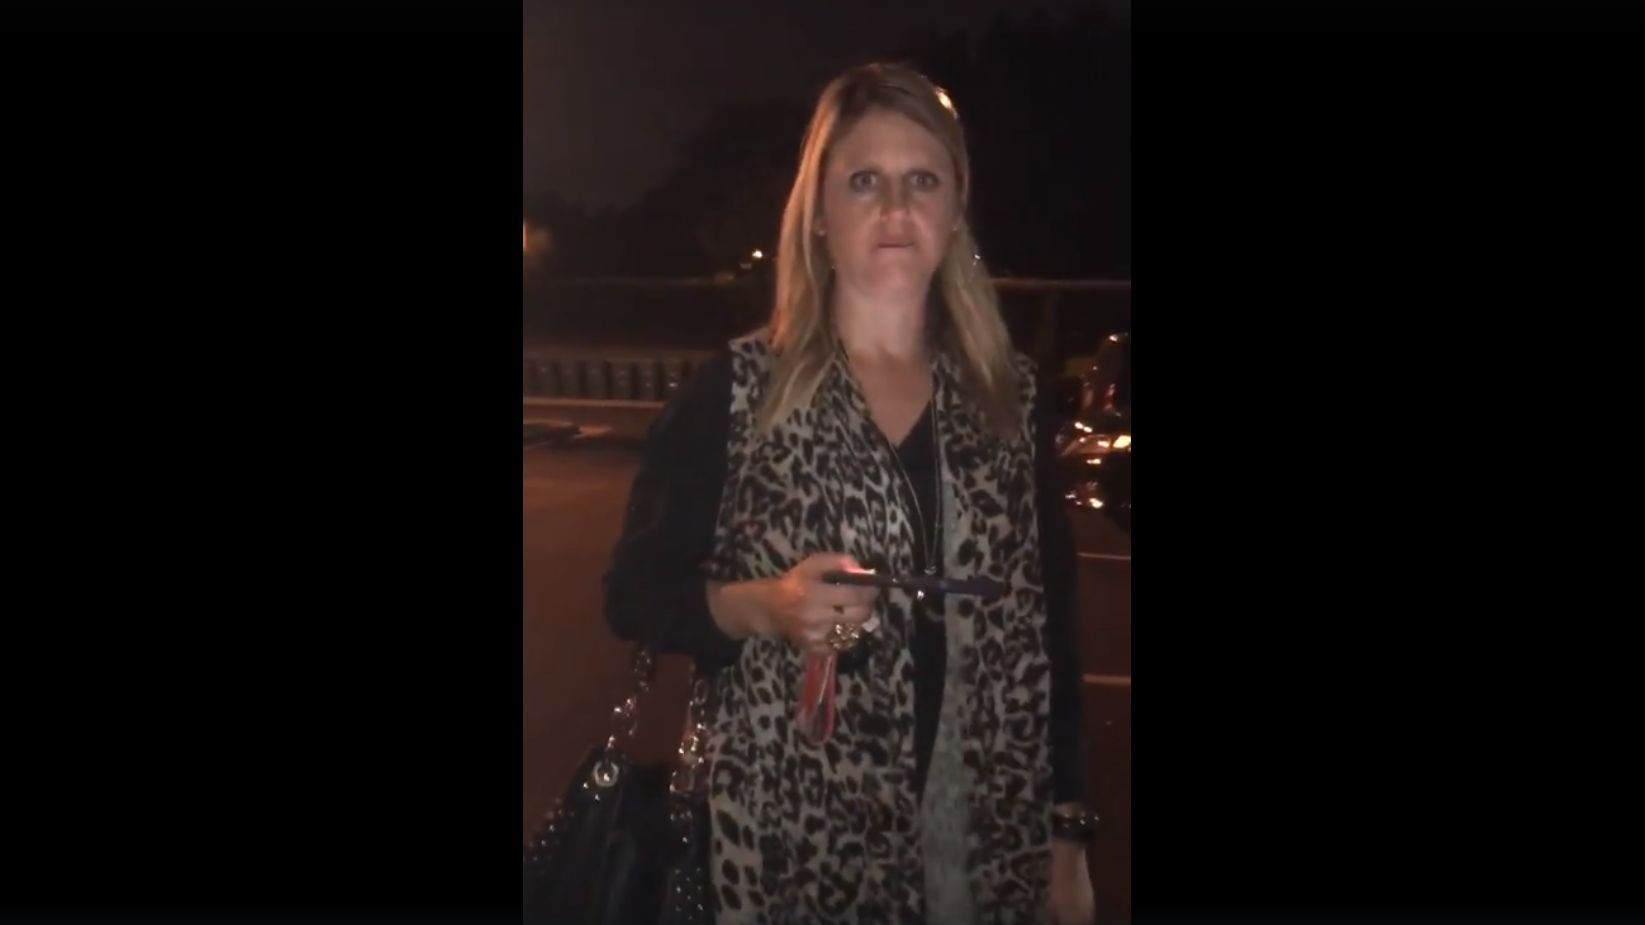 North Carolina woman seen in viral racist rant faces 911 violation charge